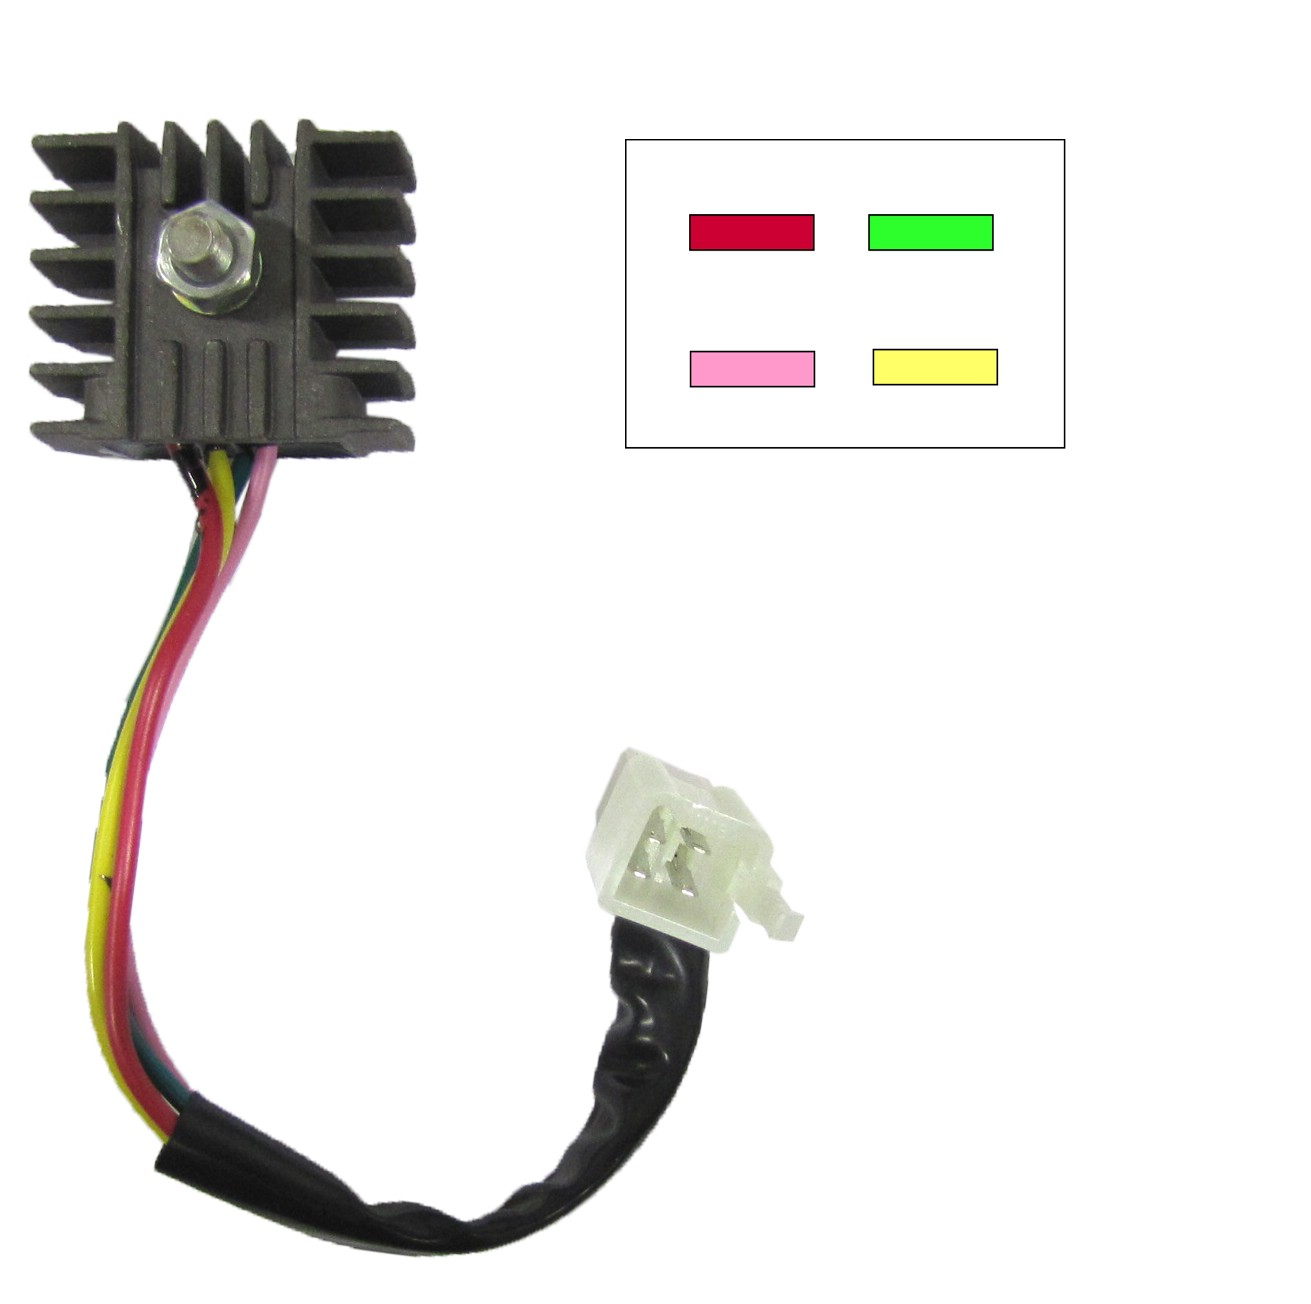 Volvo C90 Price: Rectifier Fits Honda 4 Wire Type Ideal Replacement For C90